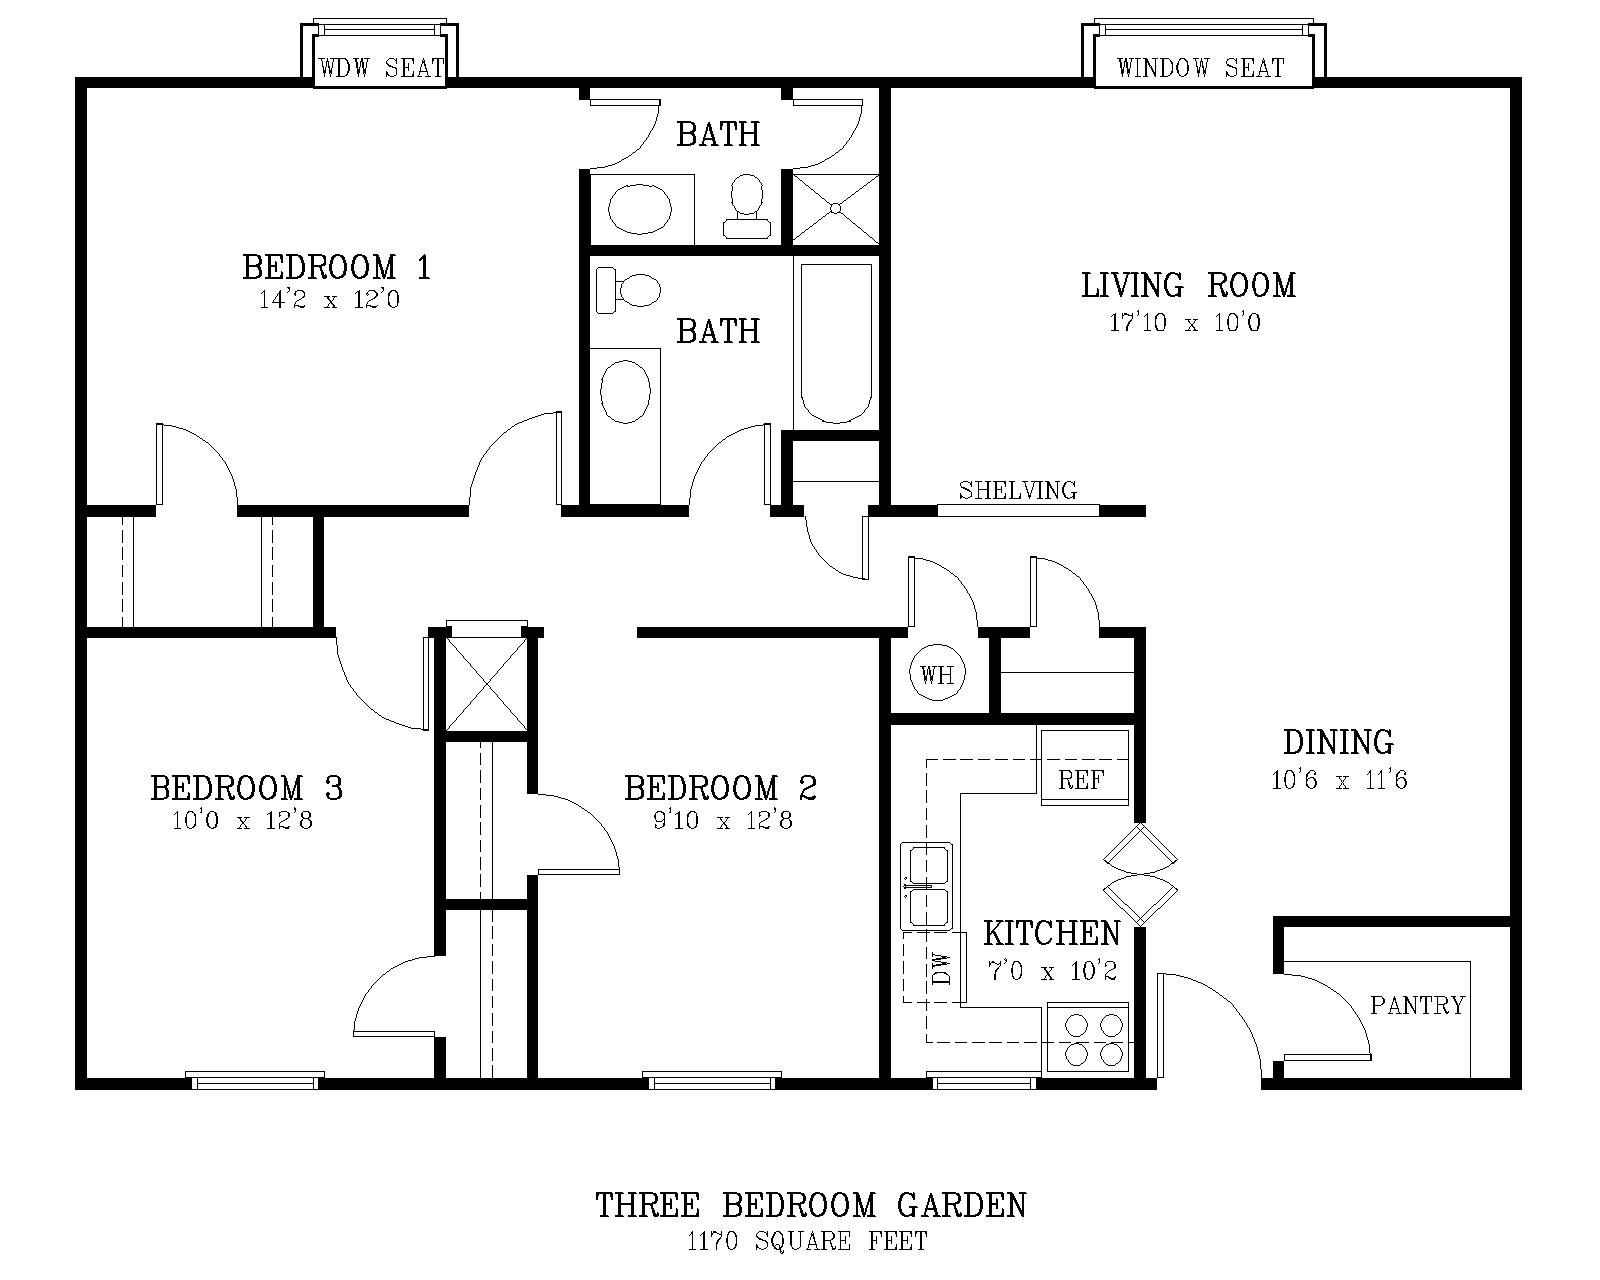 standard-living-room-size-courtyard_3_br_floor_plan.jpg ...